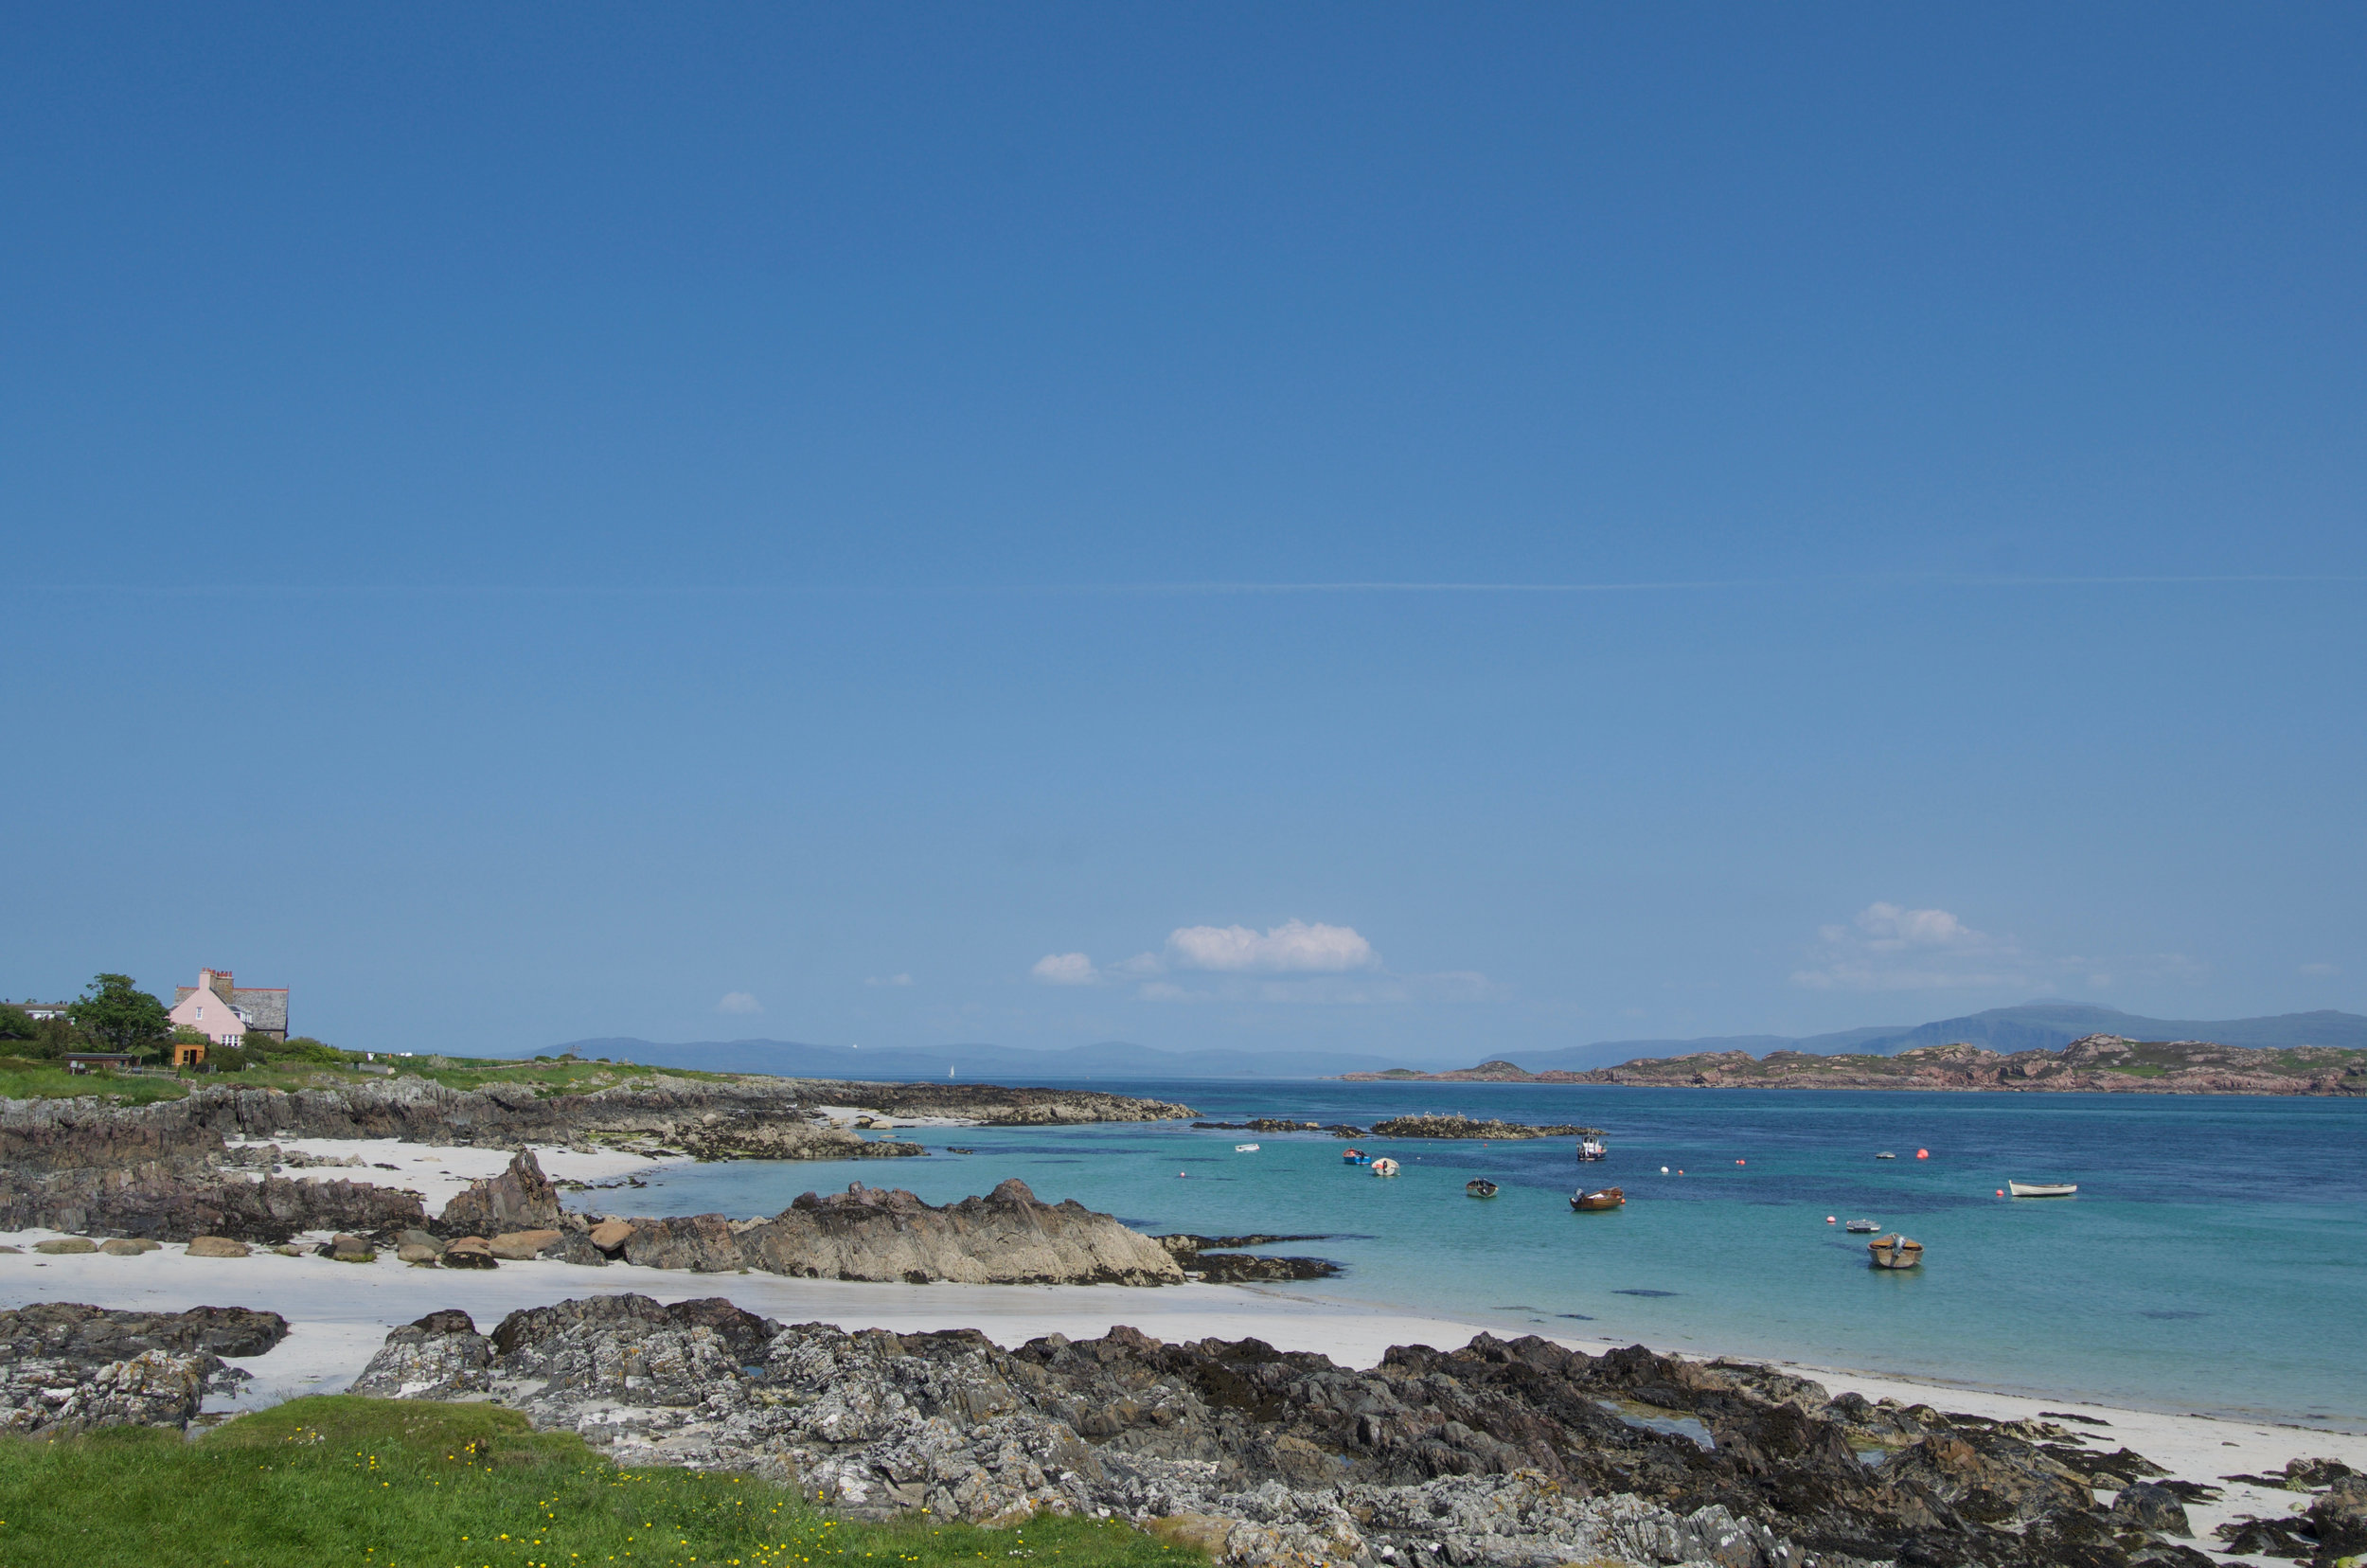 Quick visit to Iona before home